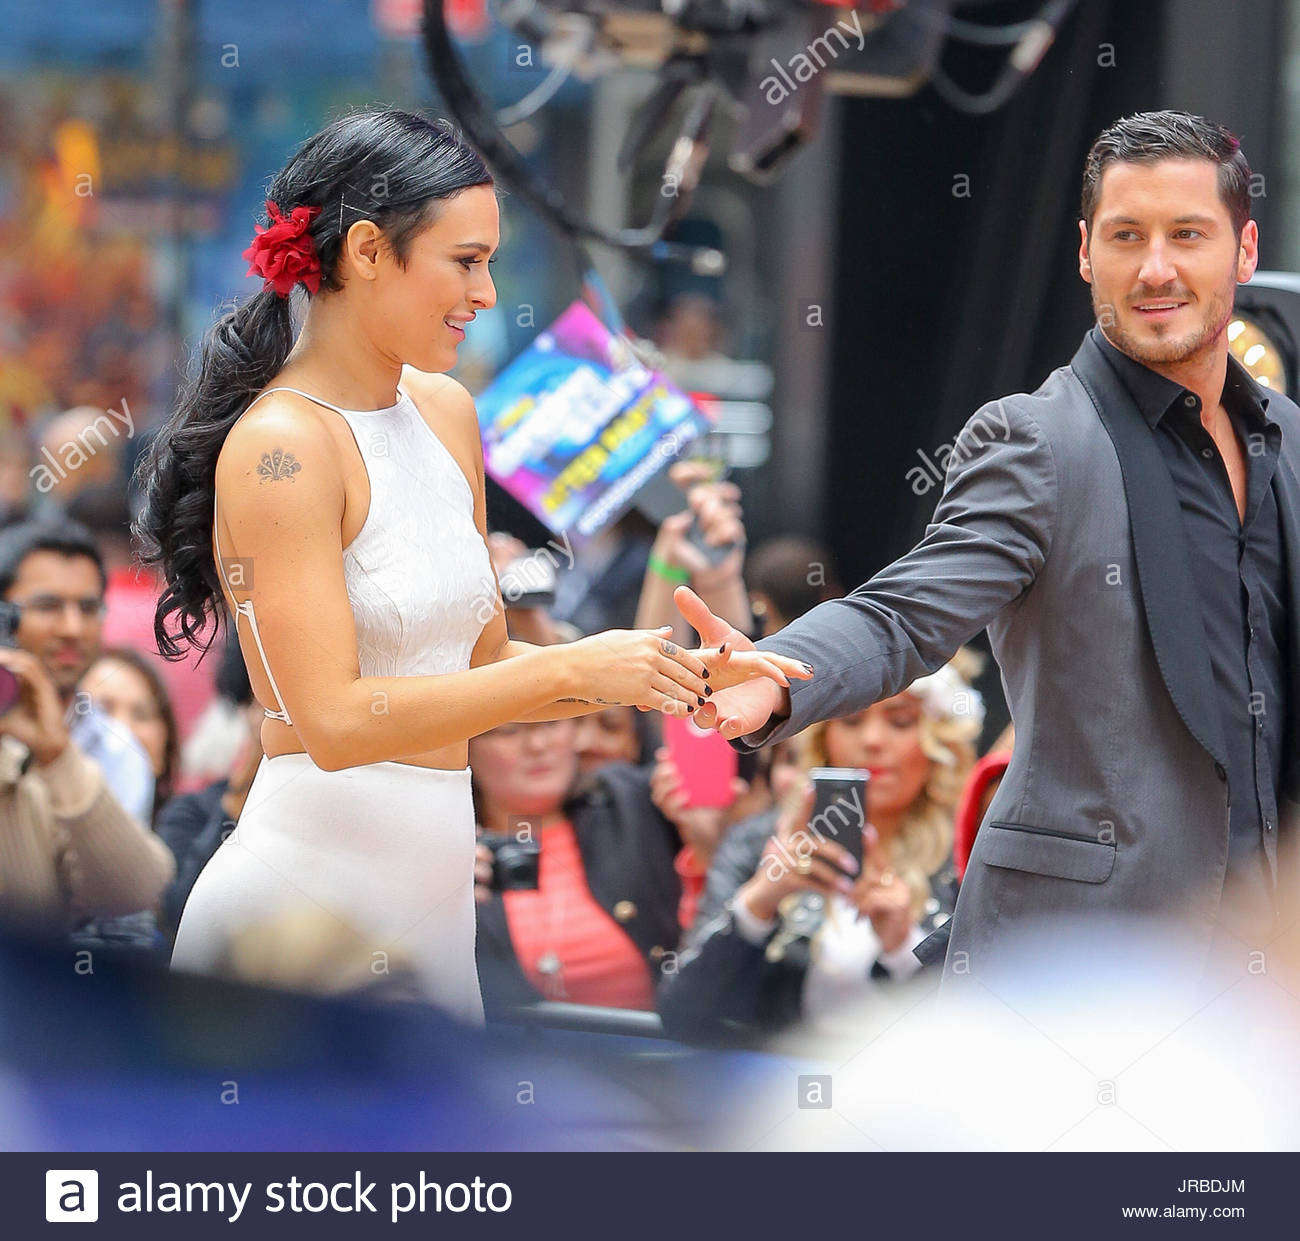 dancing with the stars winner 2015